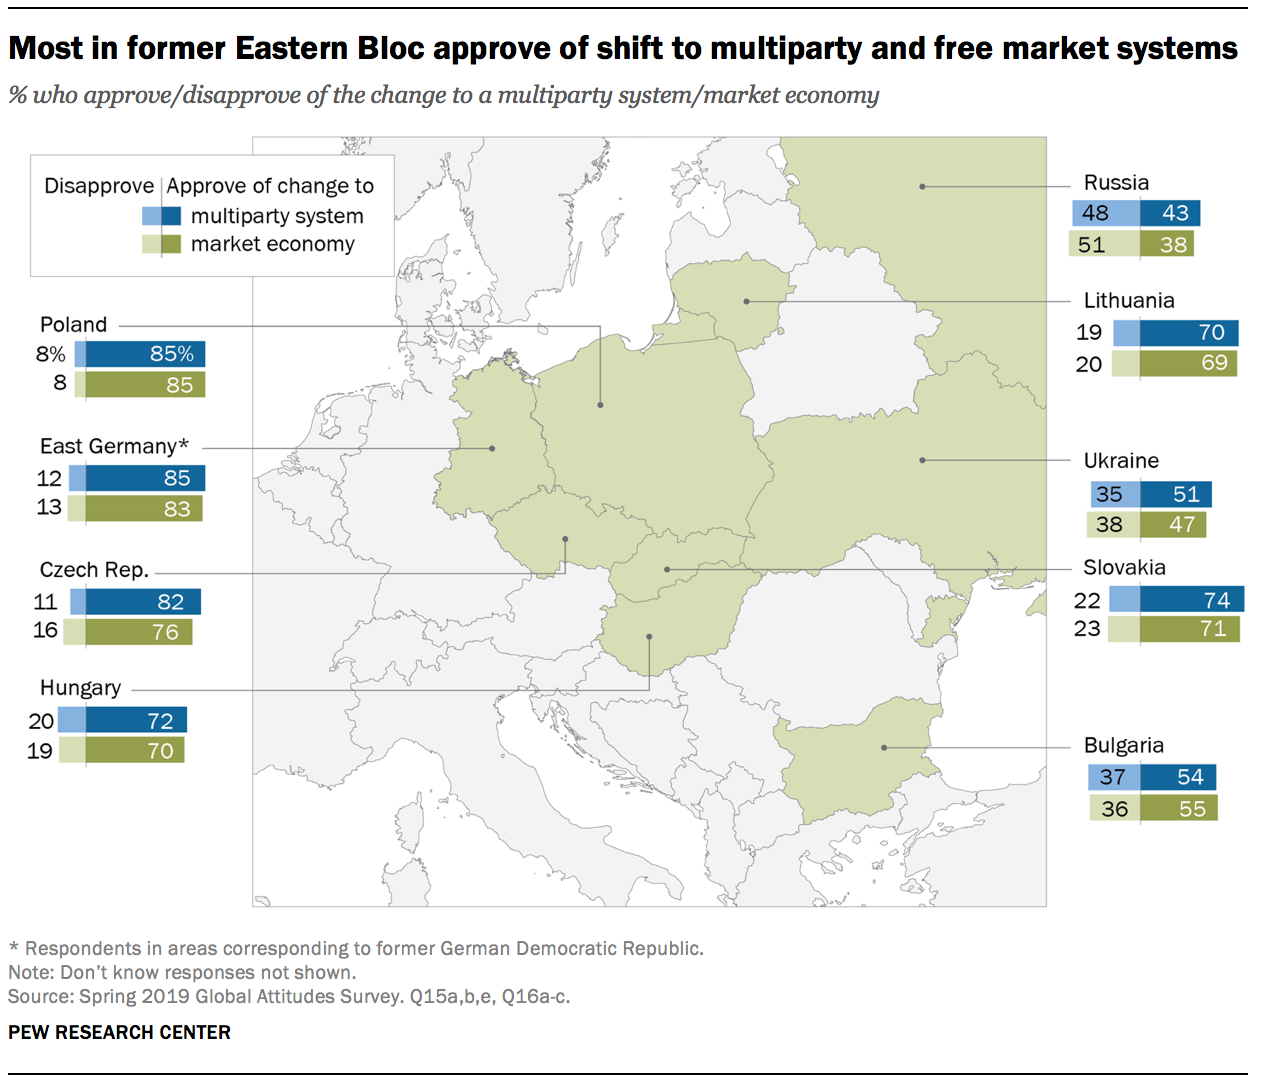 Most in former Eastern Bloc approve of shift to multiparty and free market systems